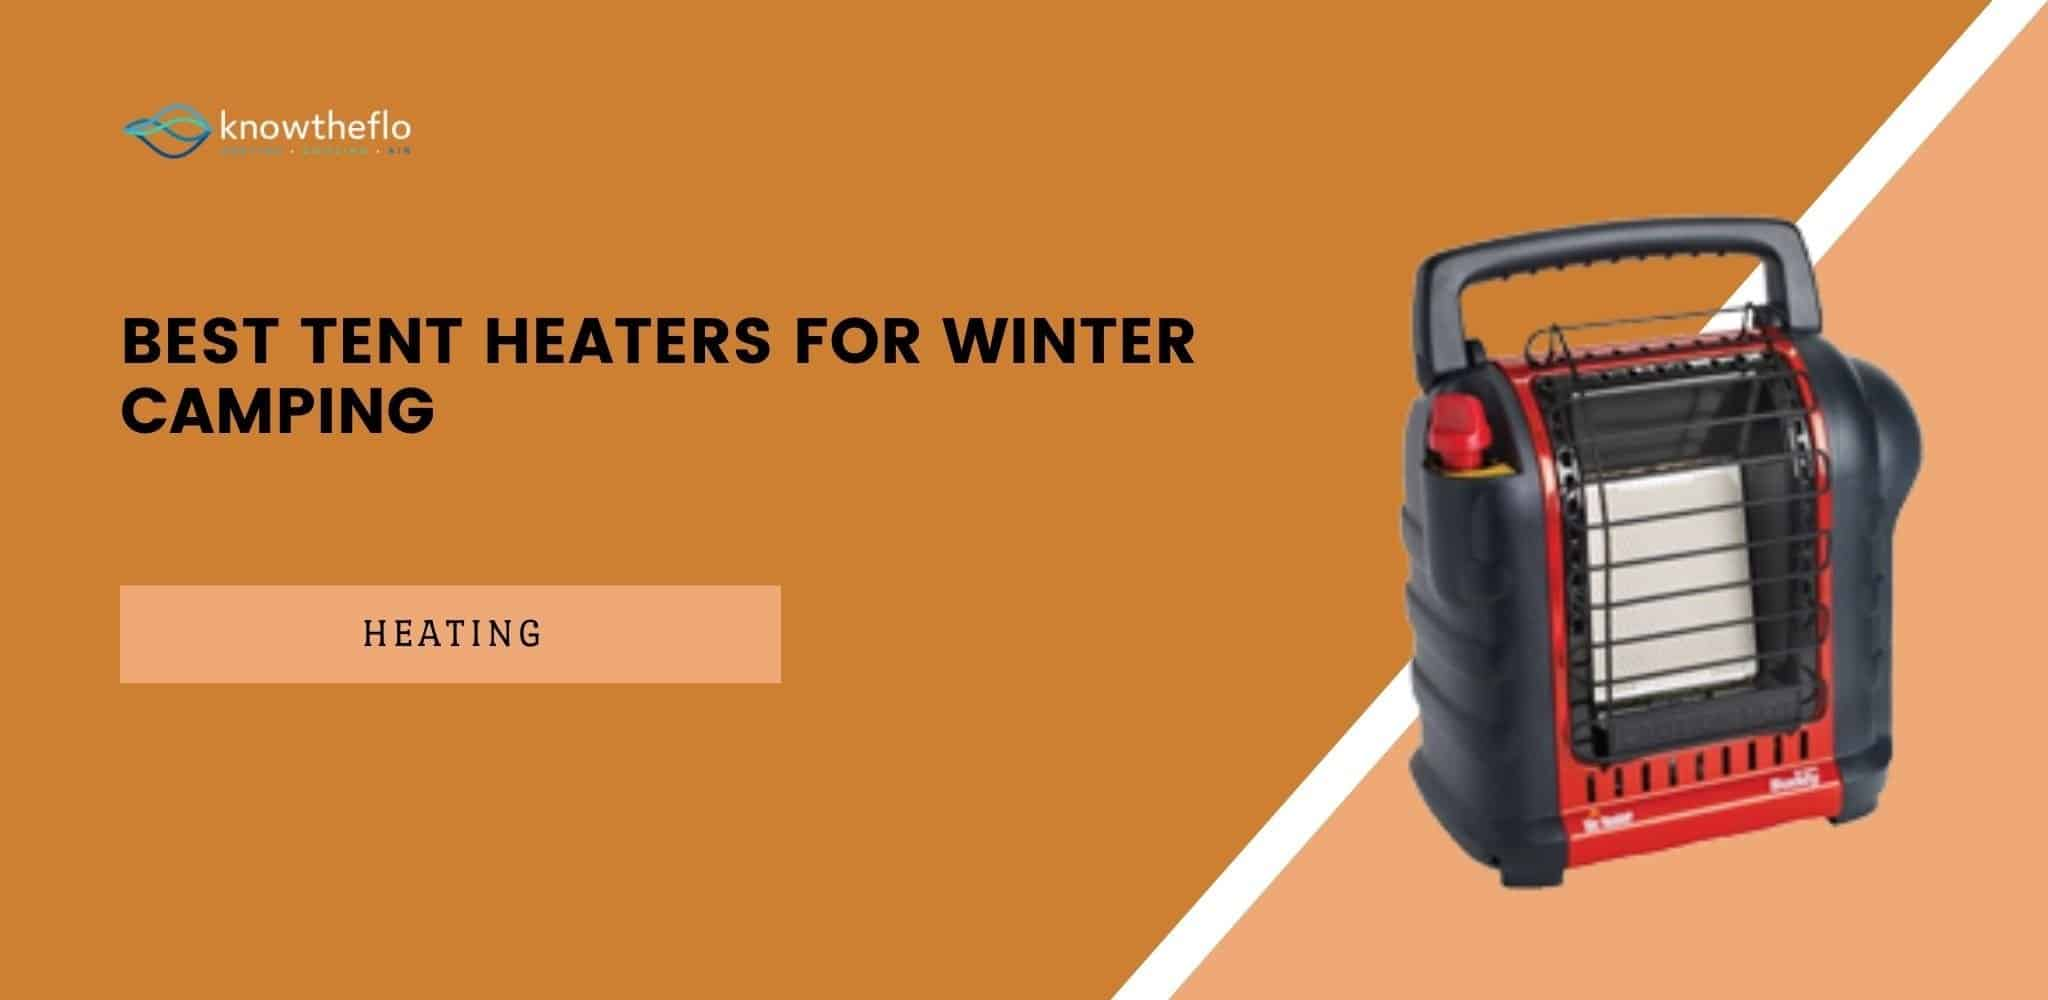 Best Tent Heaters for Winter Camping in 2020-2021